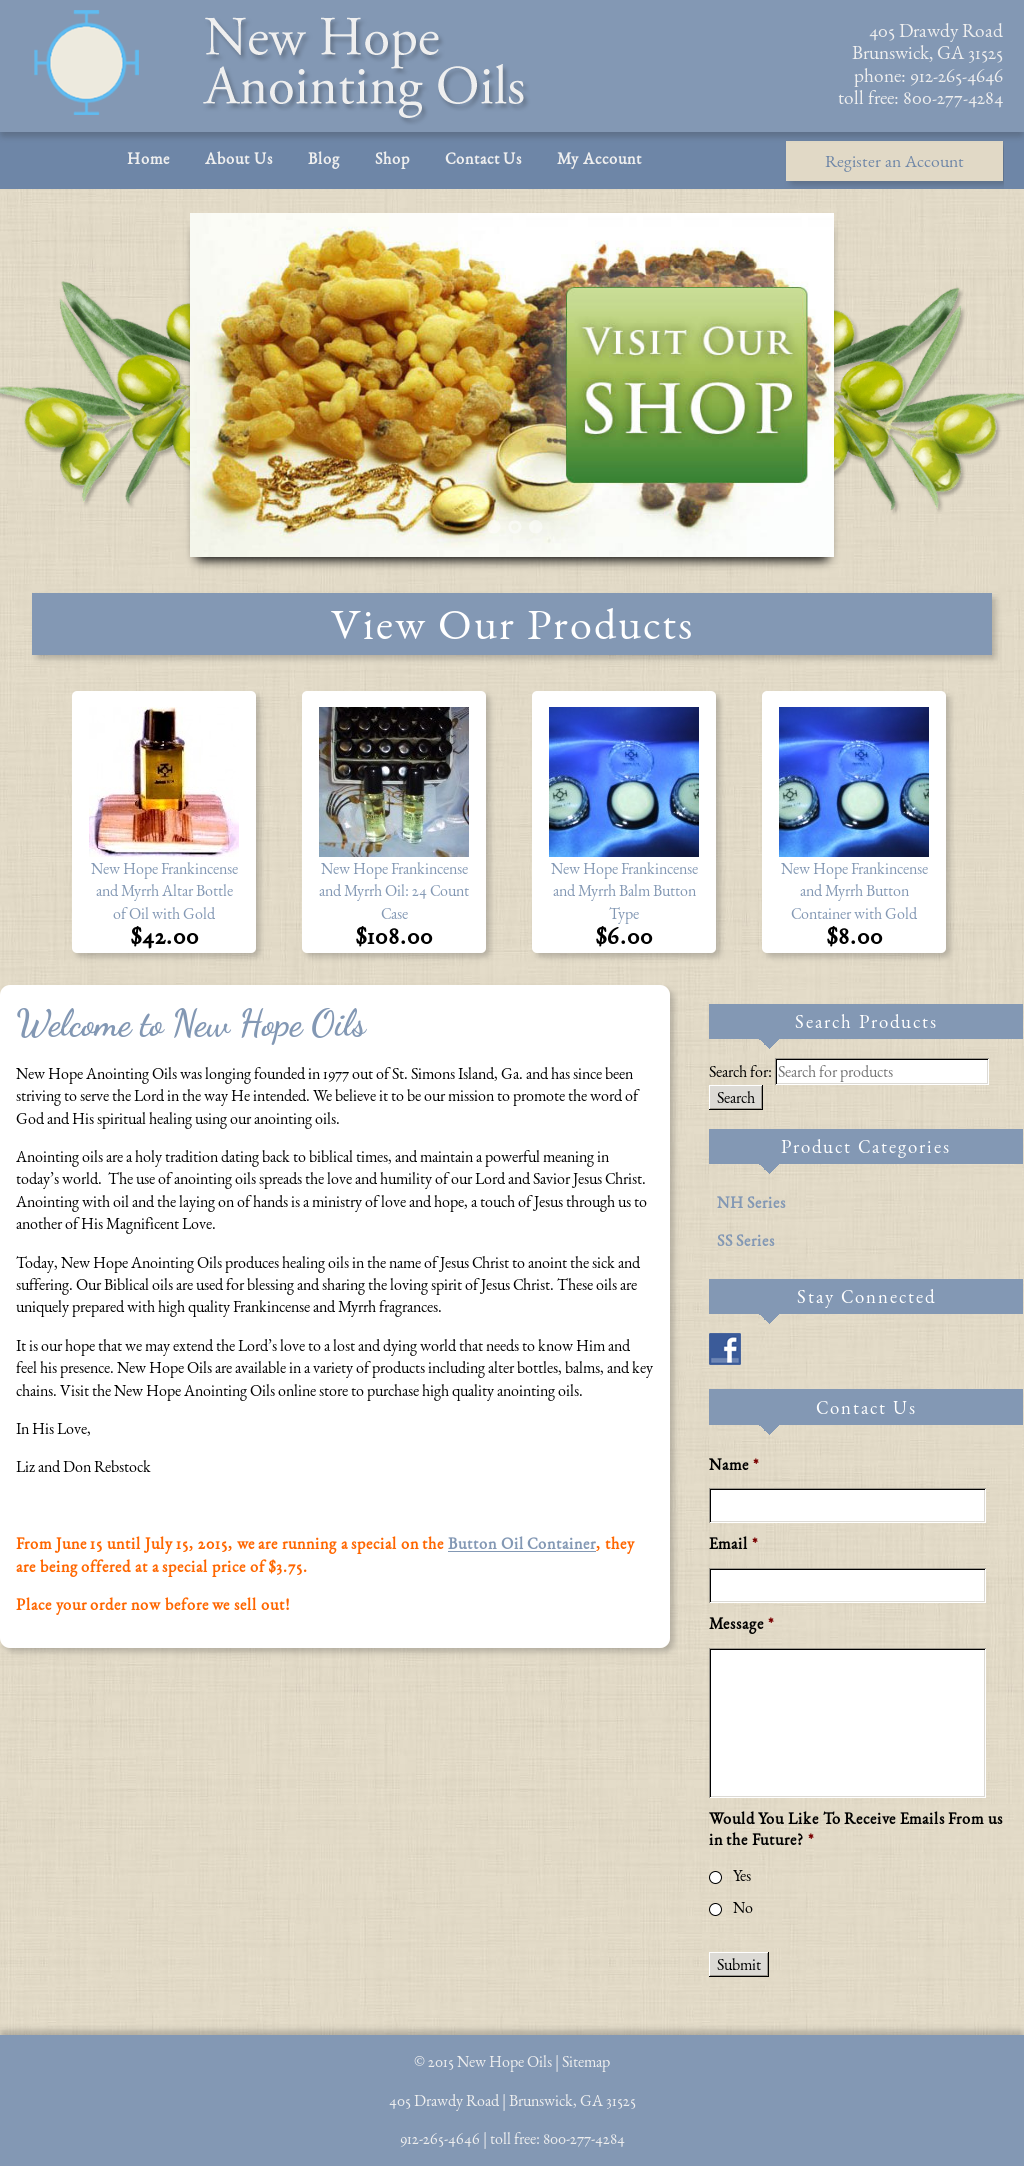 New Hope Anointing Oil Competitors, Revenue and Employees - Owler